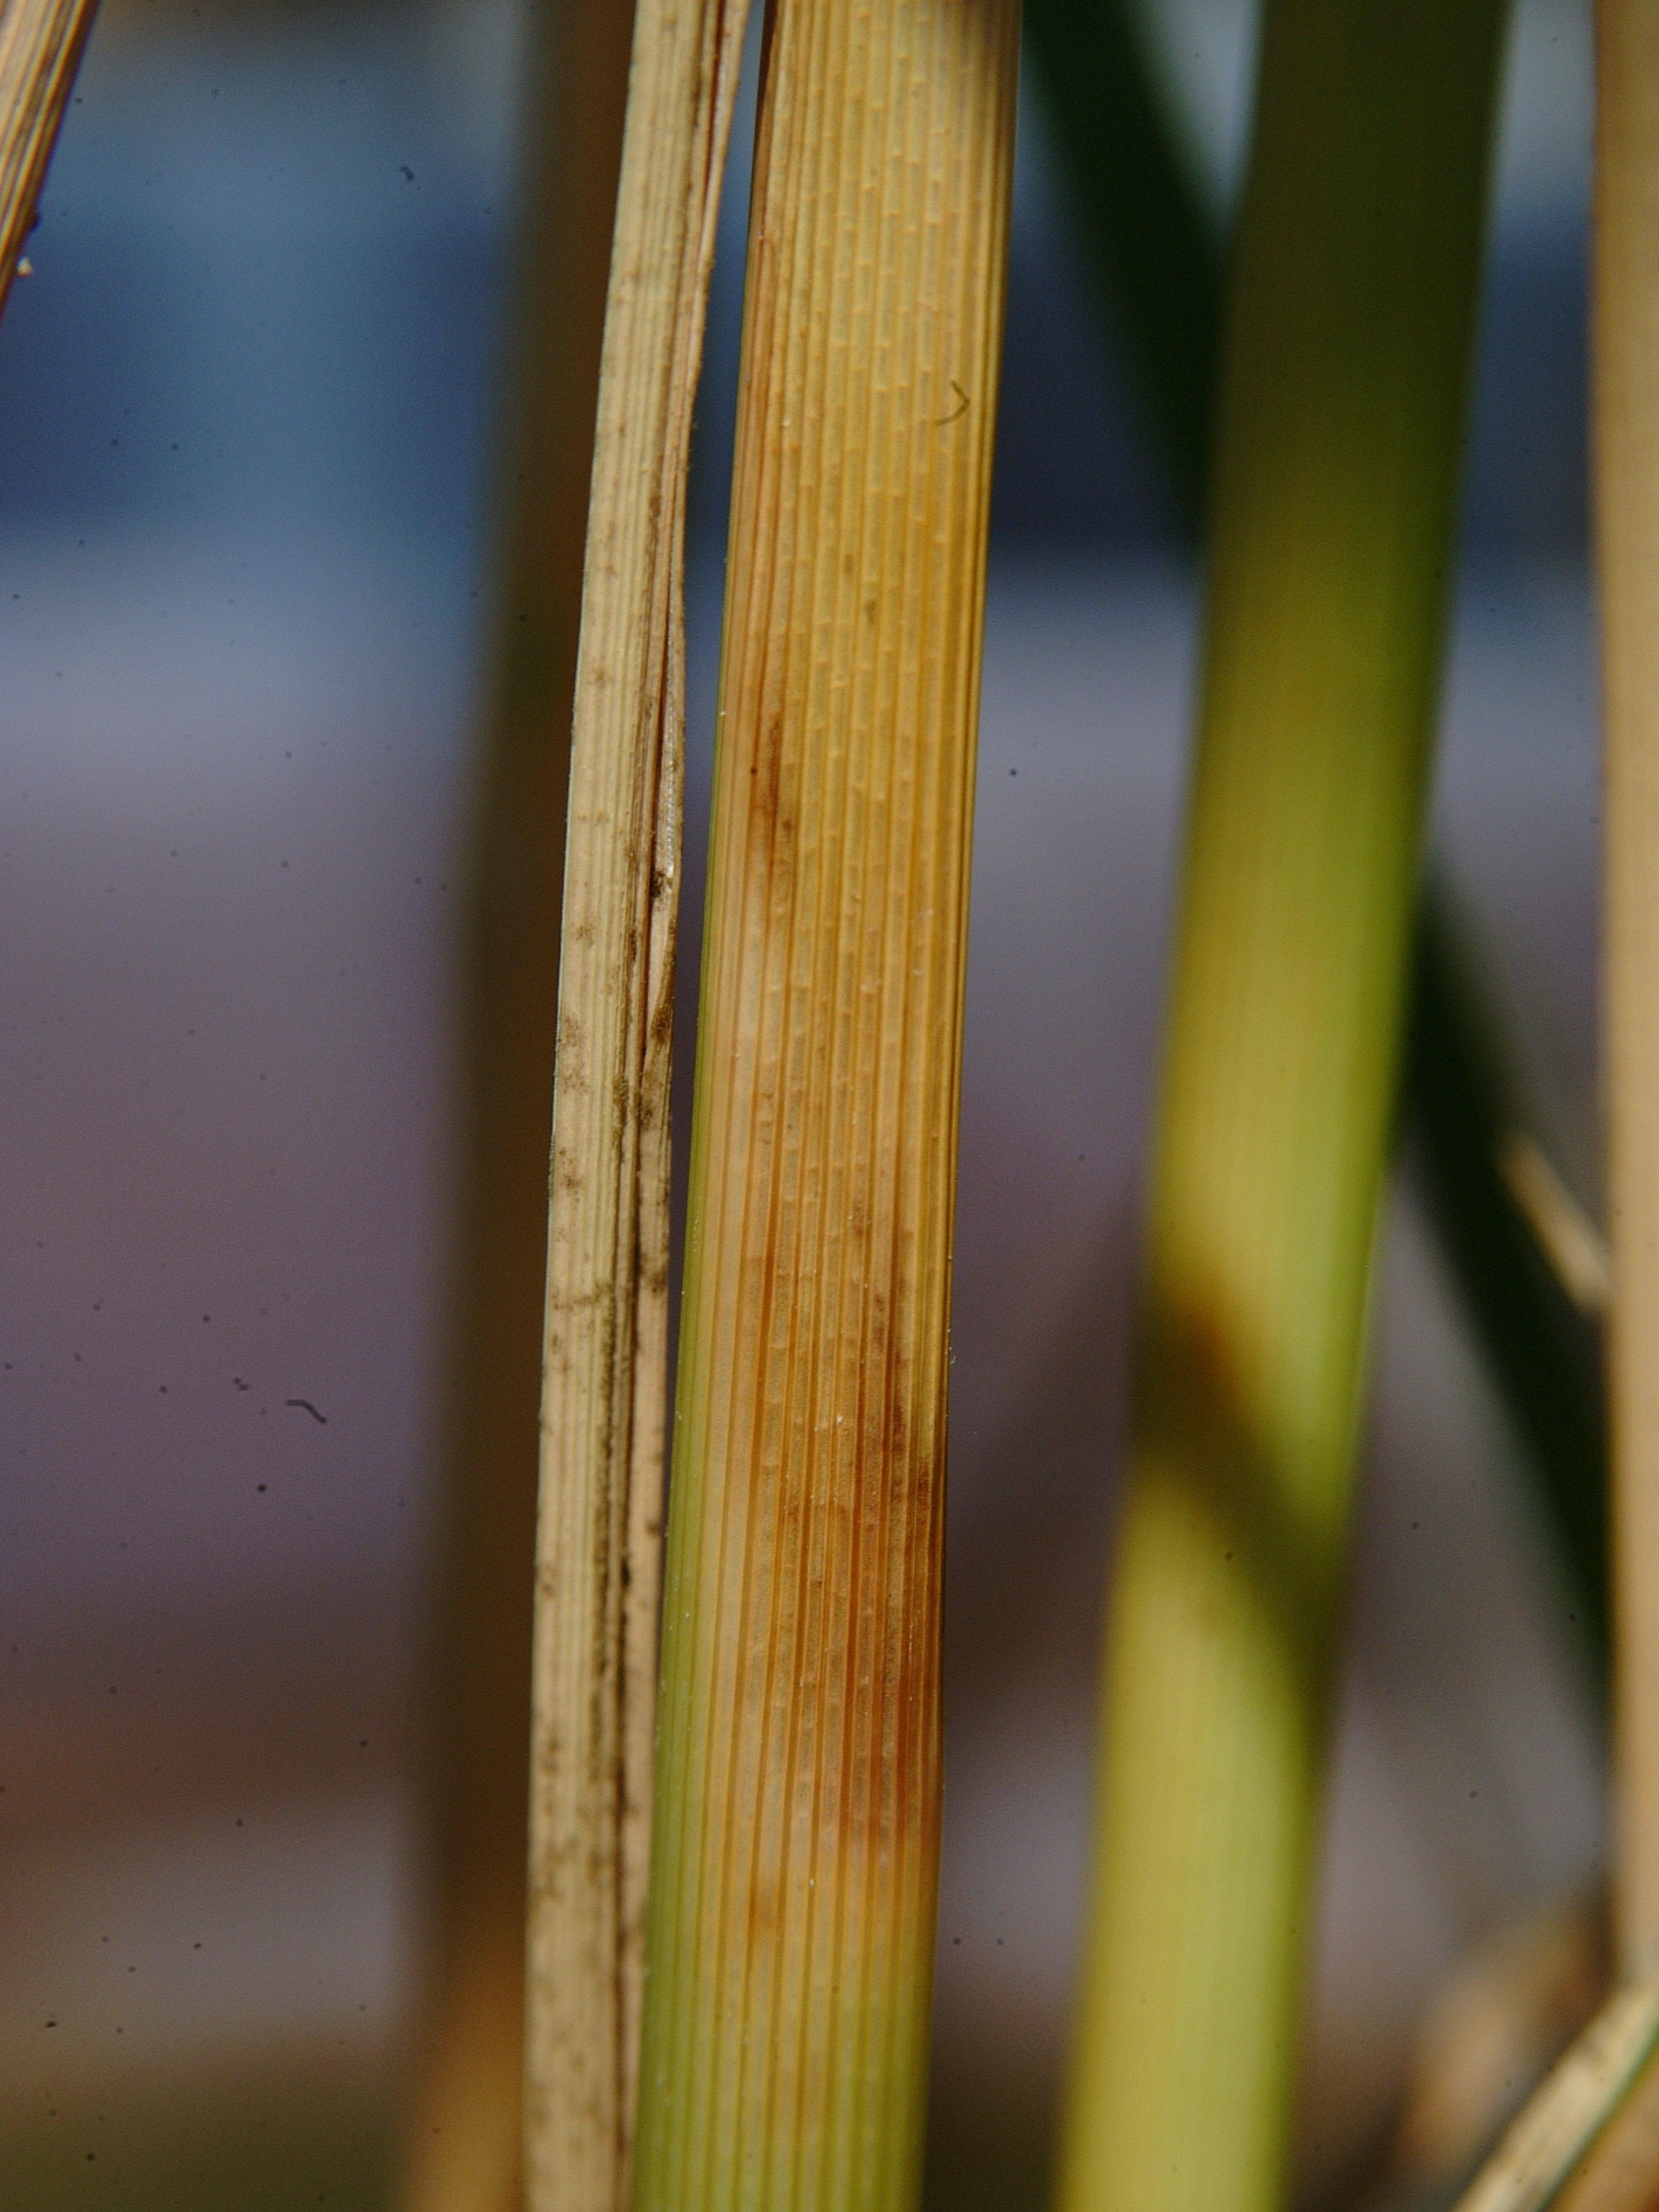 Mite Injury on Leaf Sheath 4